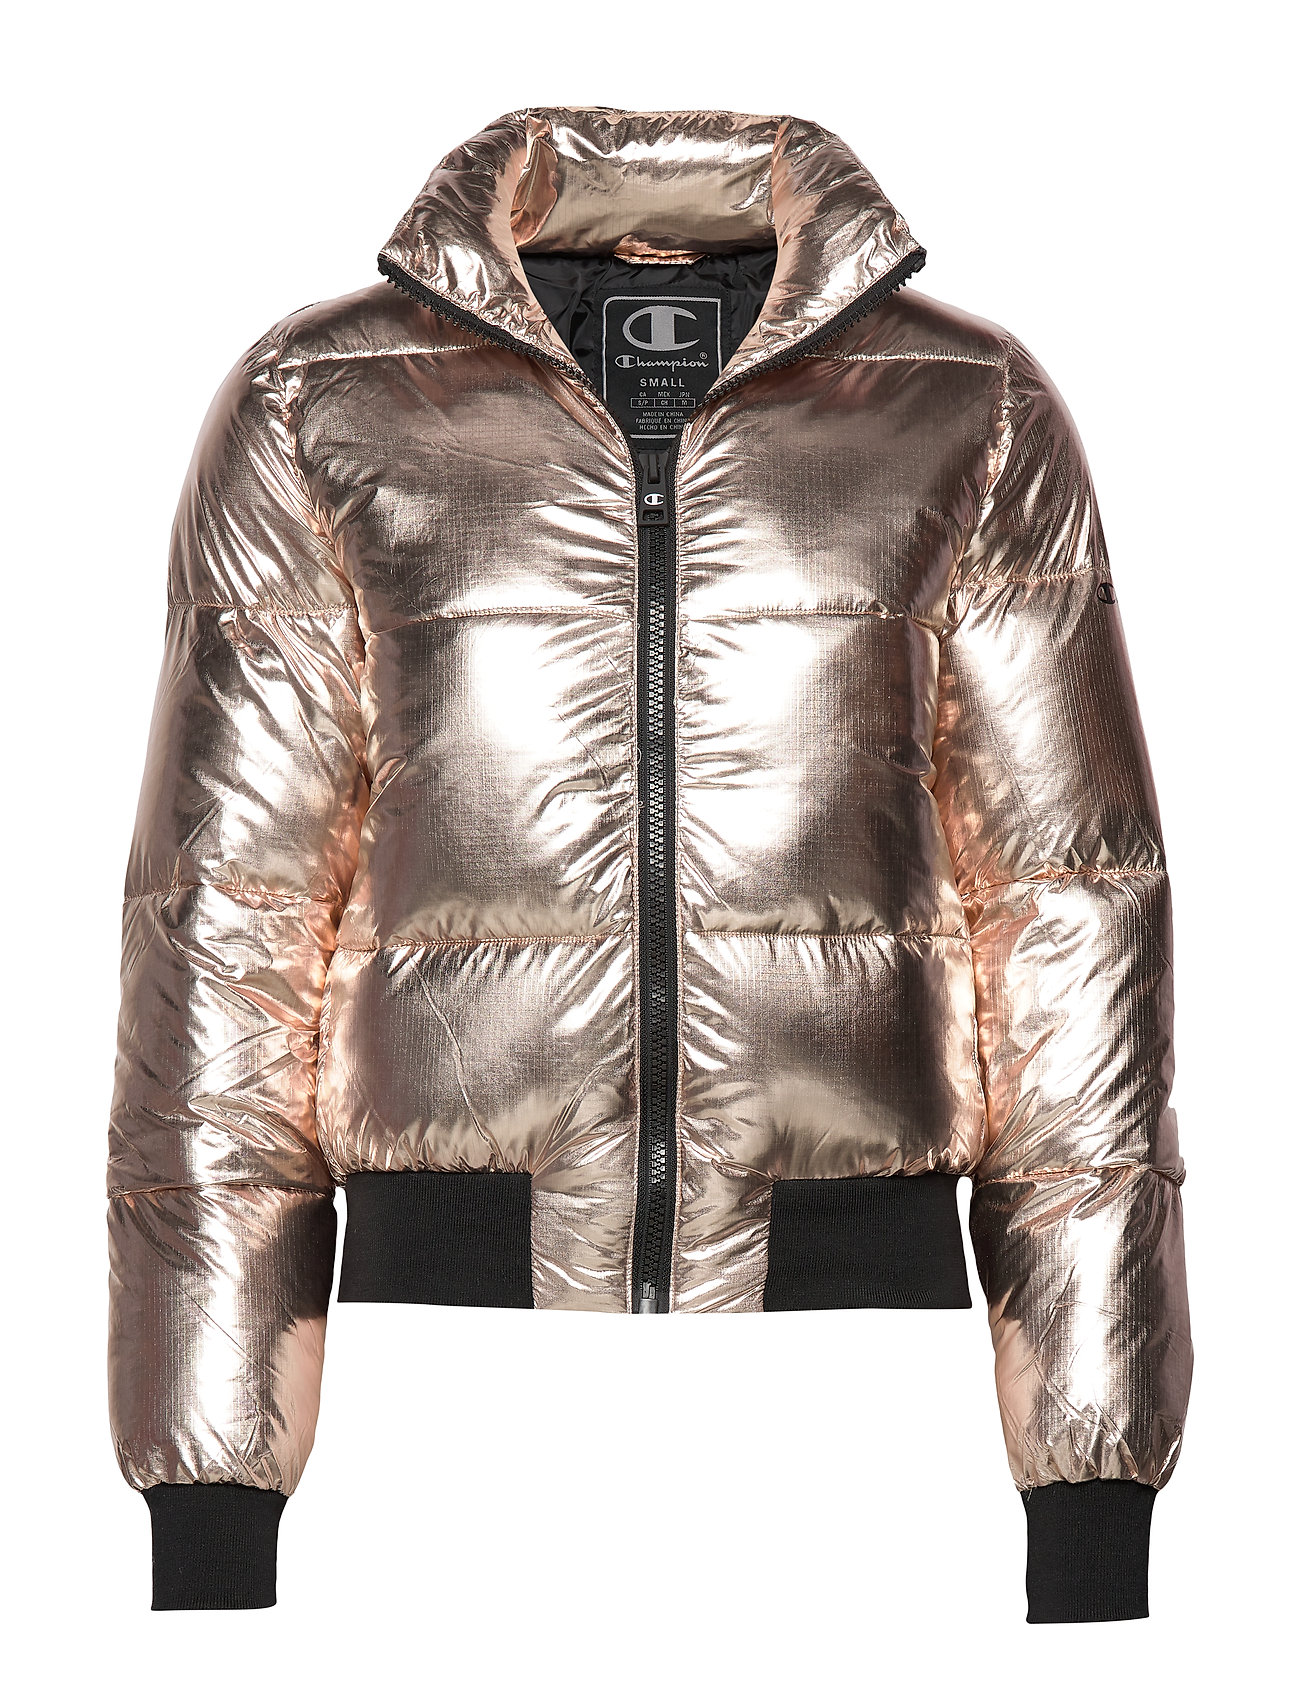 Champion Bomber Jacket - LIGHT ROSE GOLD